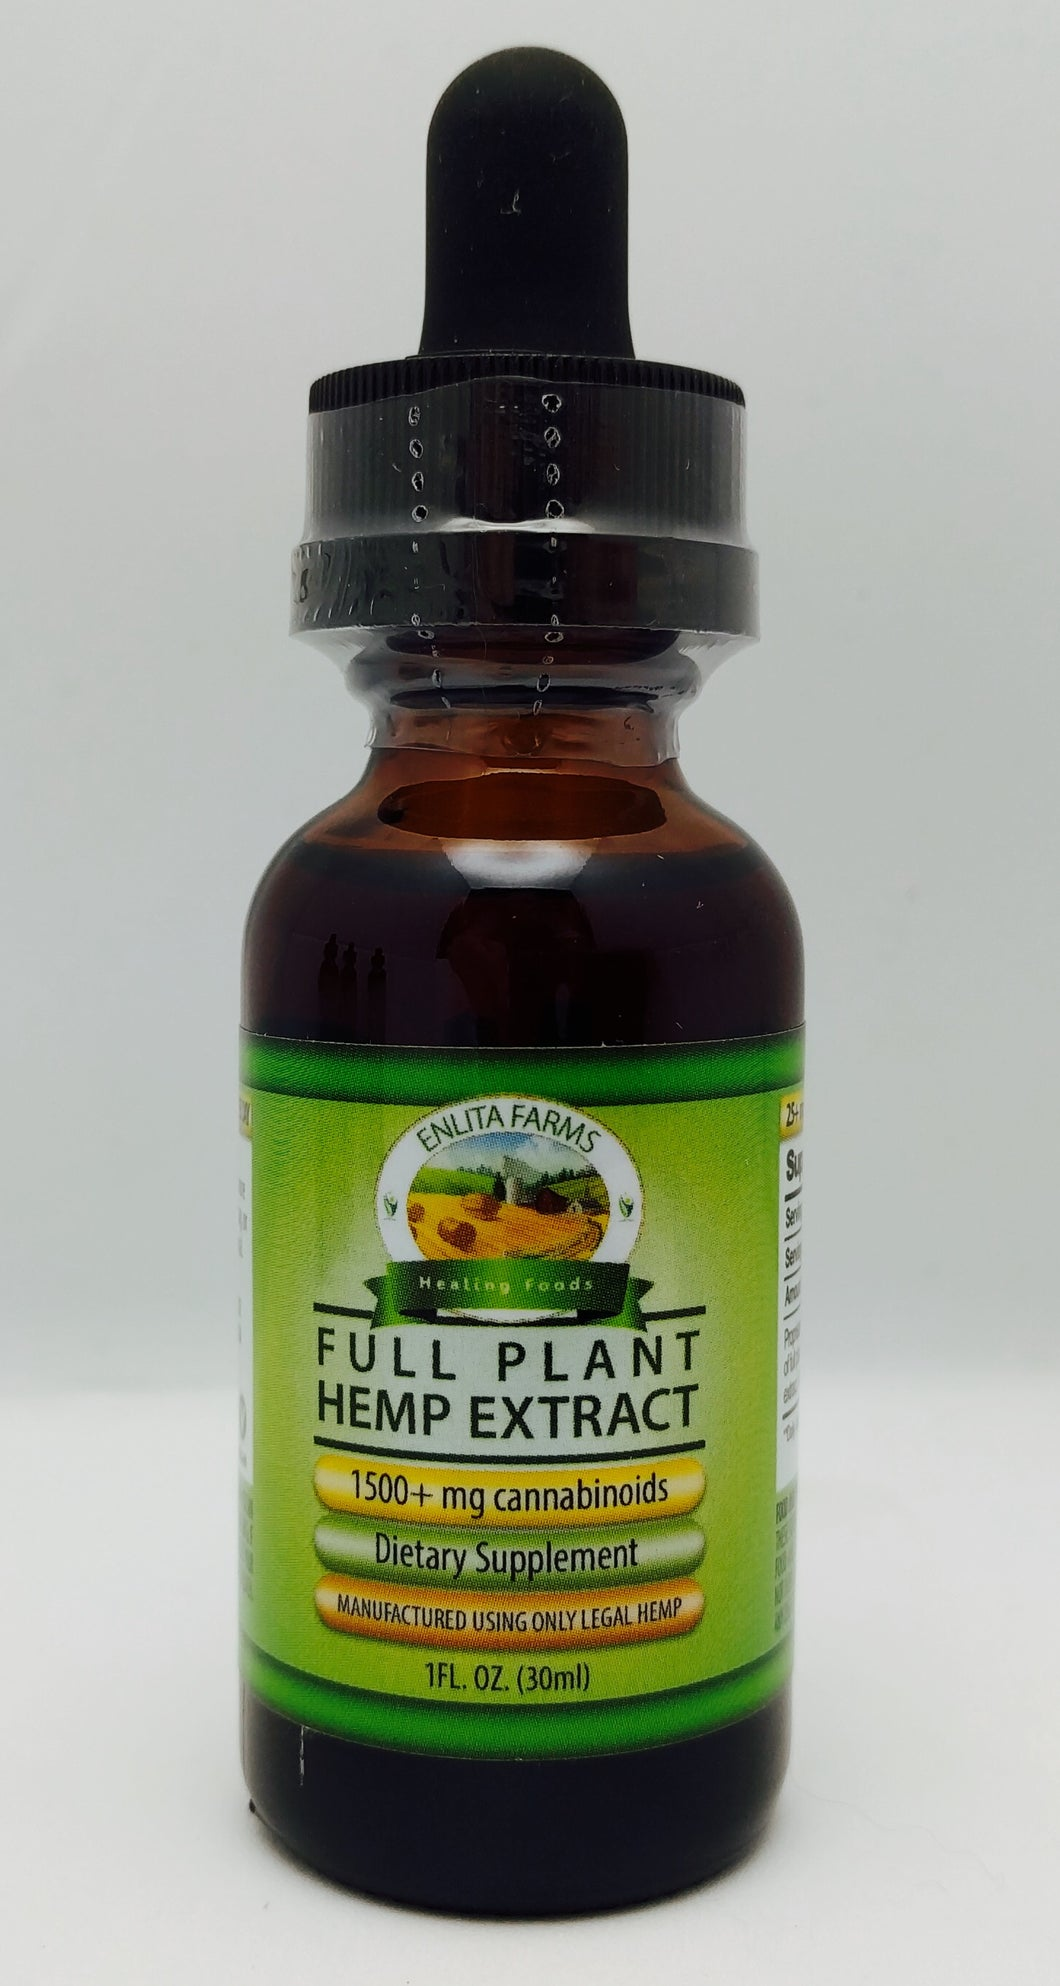 Enlita Farms CBD oil Full-spectrum Hemp Extract Tincture 1500mg 30 mL